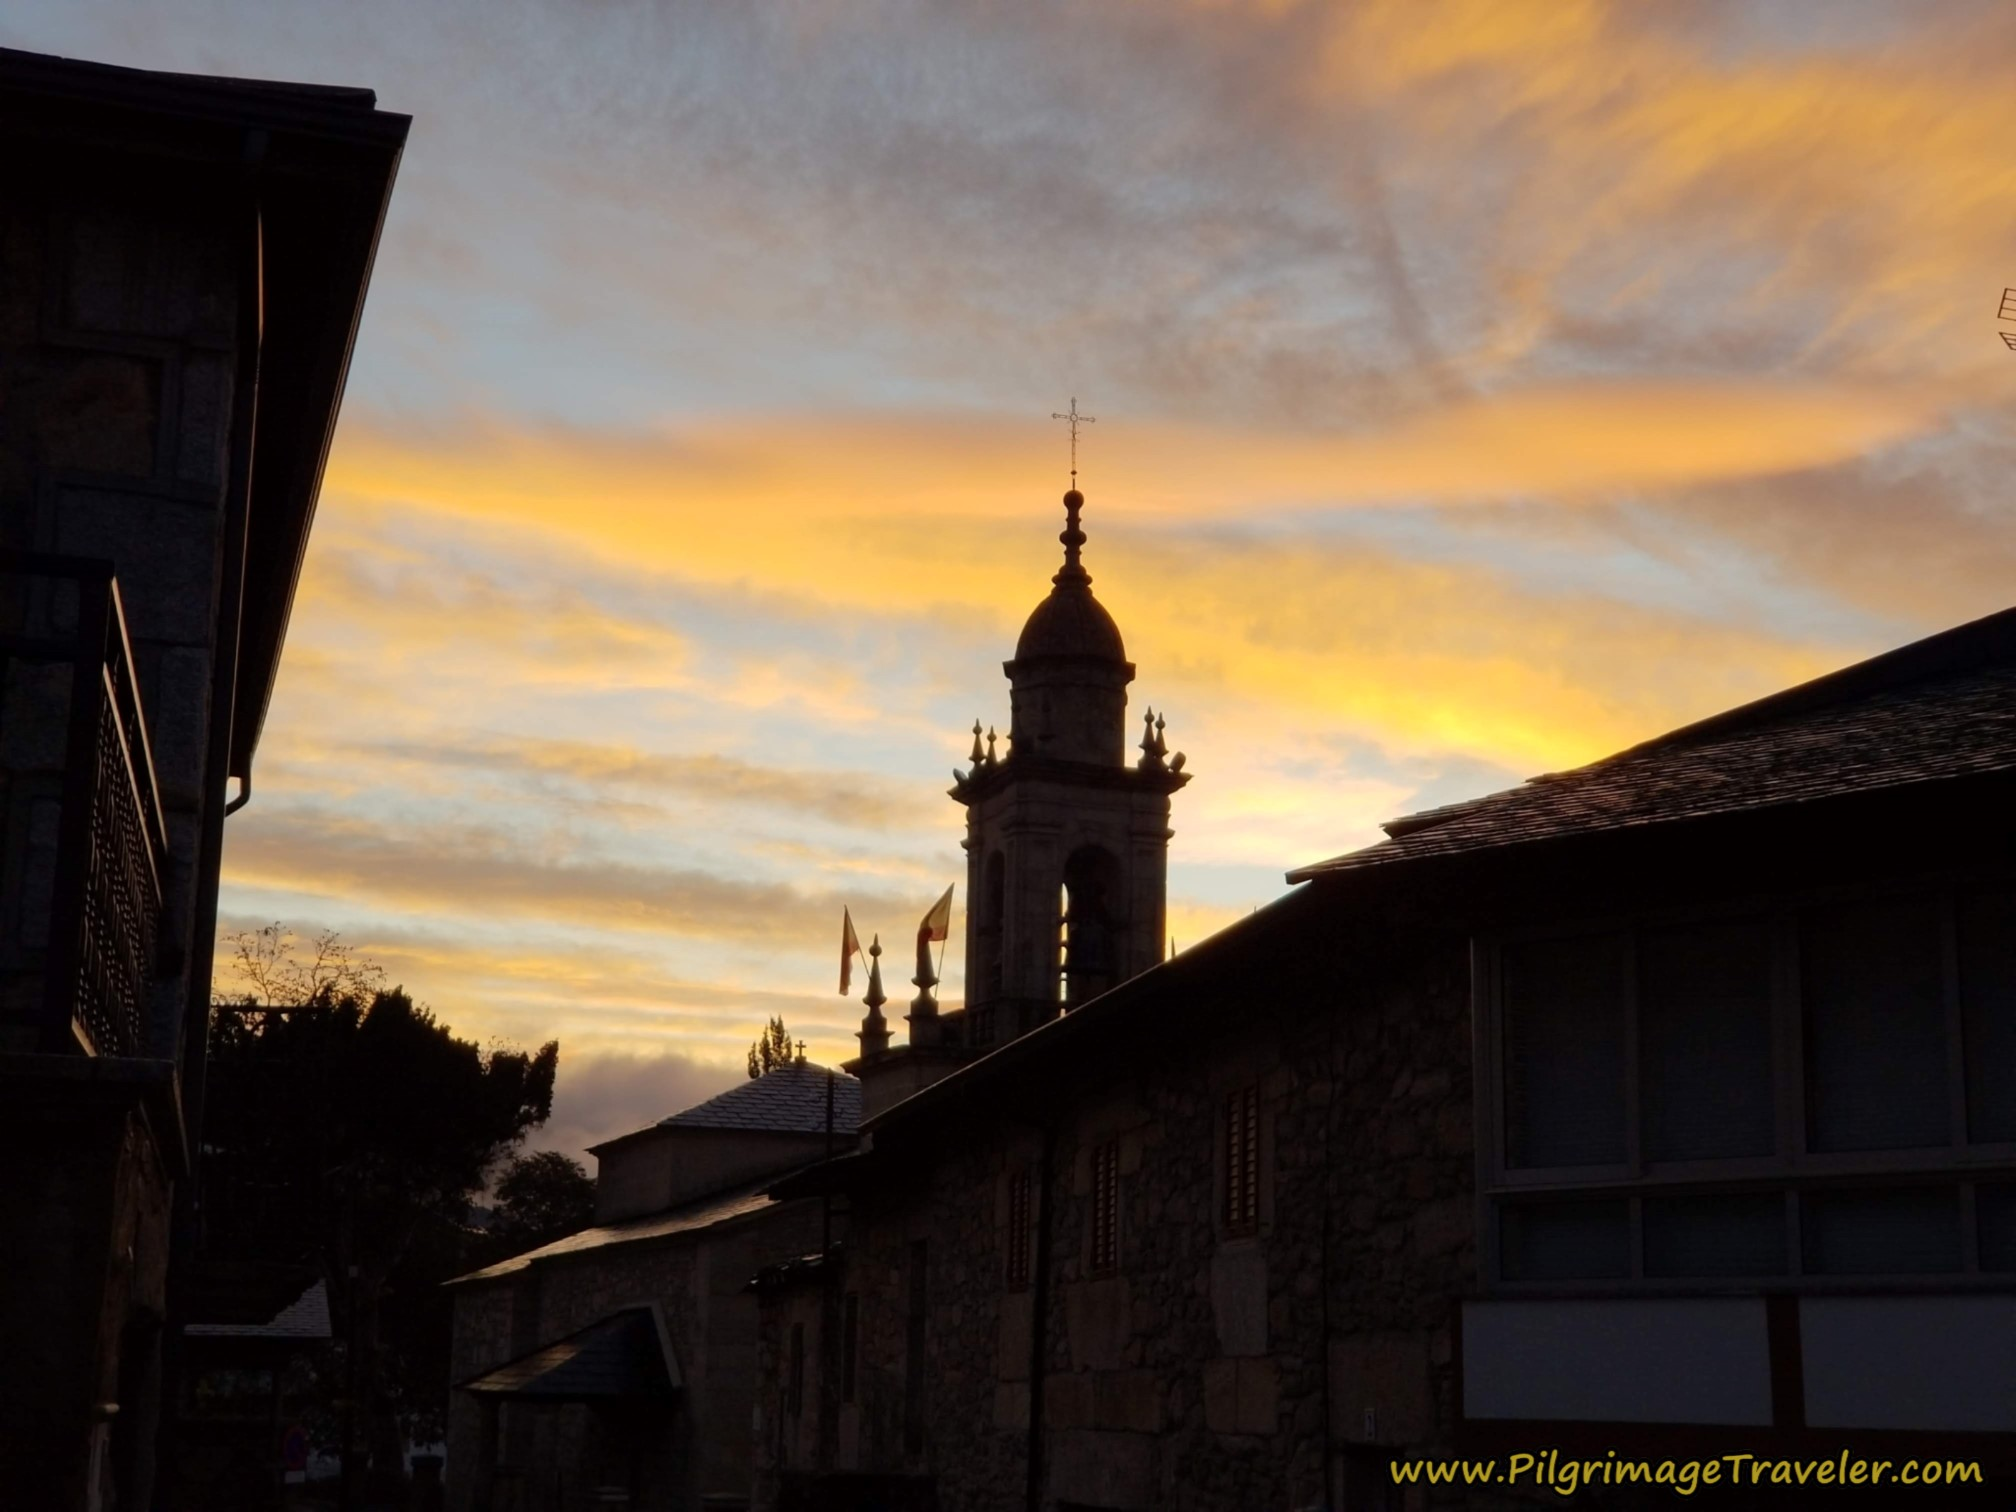 Sunrise Over the Belltower of the Iglesia de San Mamés in Lubián